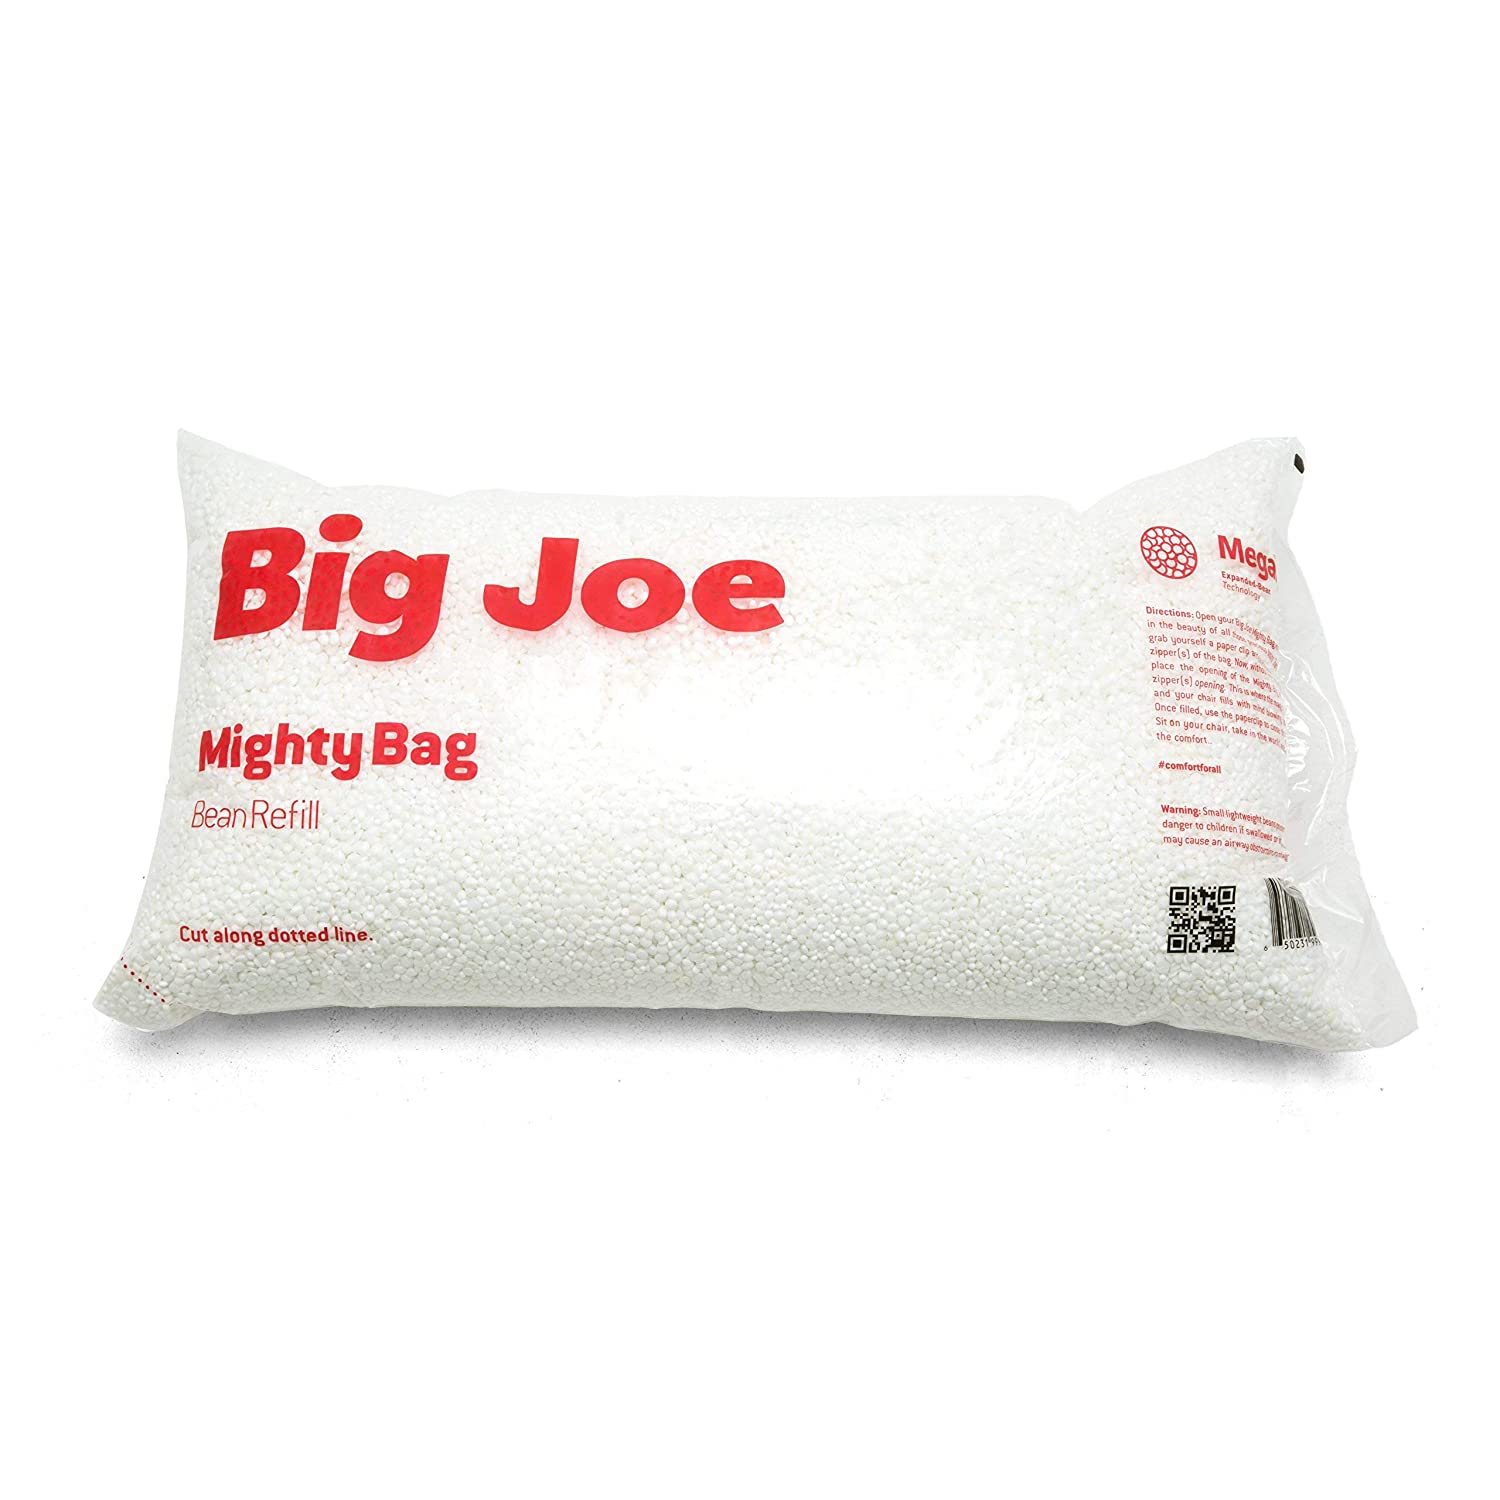 100 L UltimaX White Bean Bags Refill Comfort Research Megahh Renewed